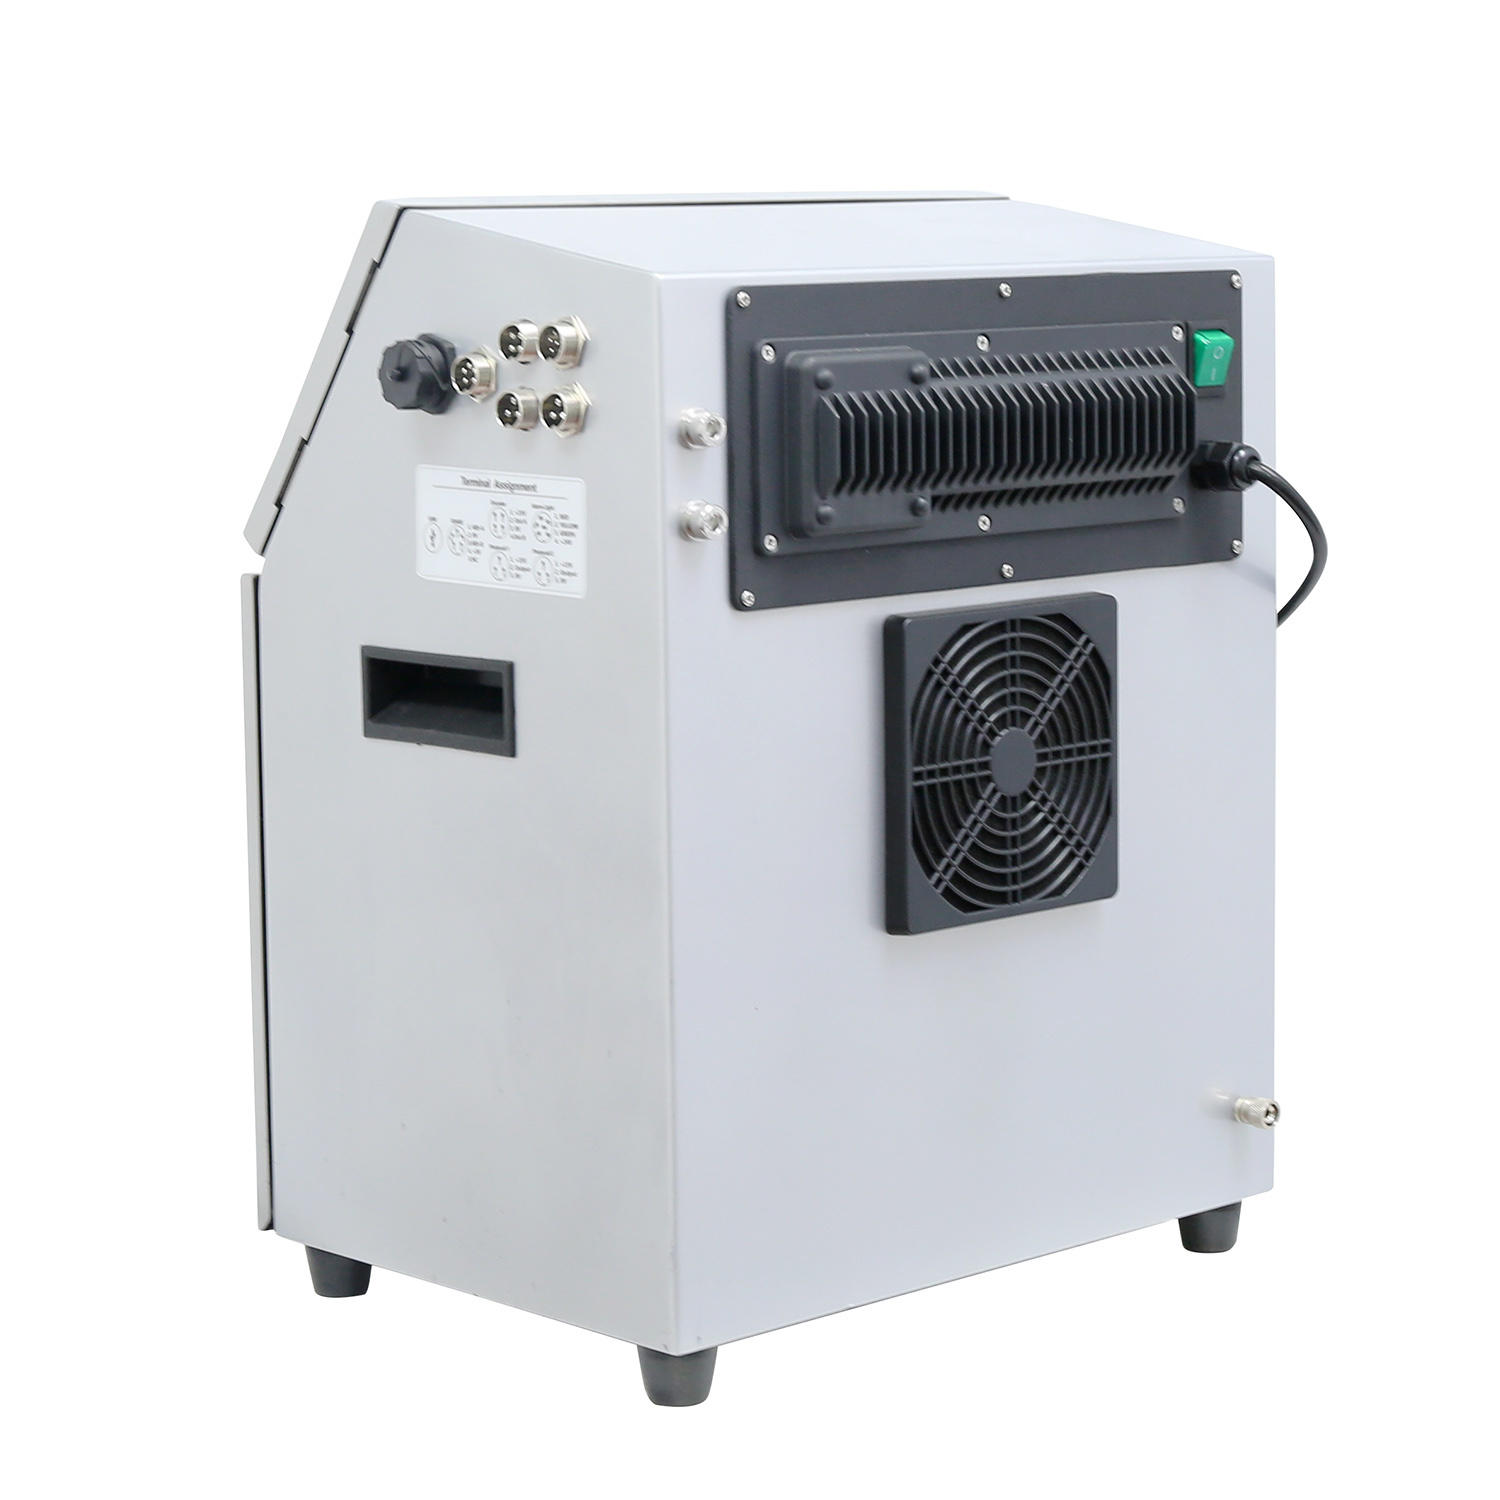 Leadtech Lt800 Thermal Ink Jet Printer Coding